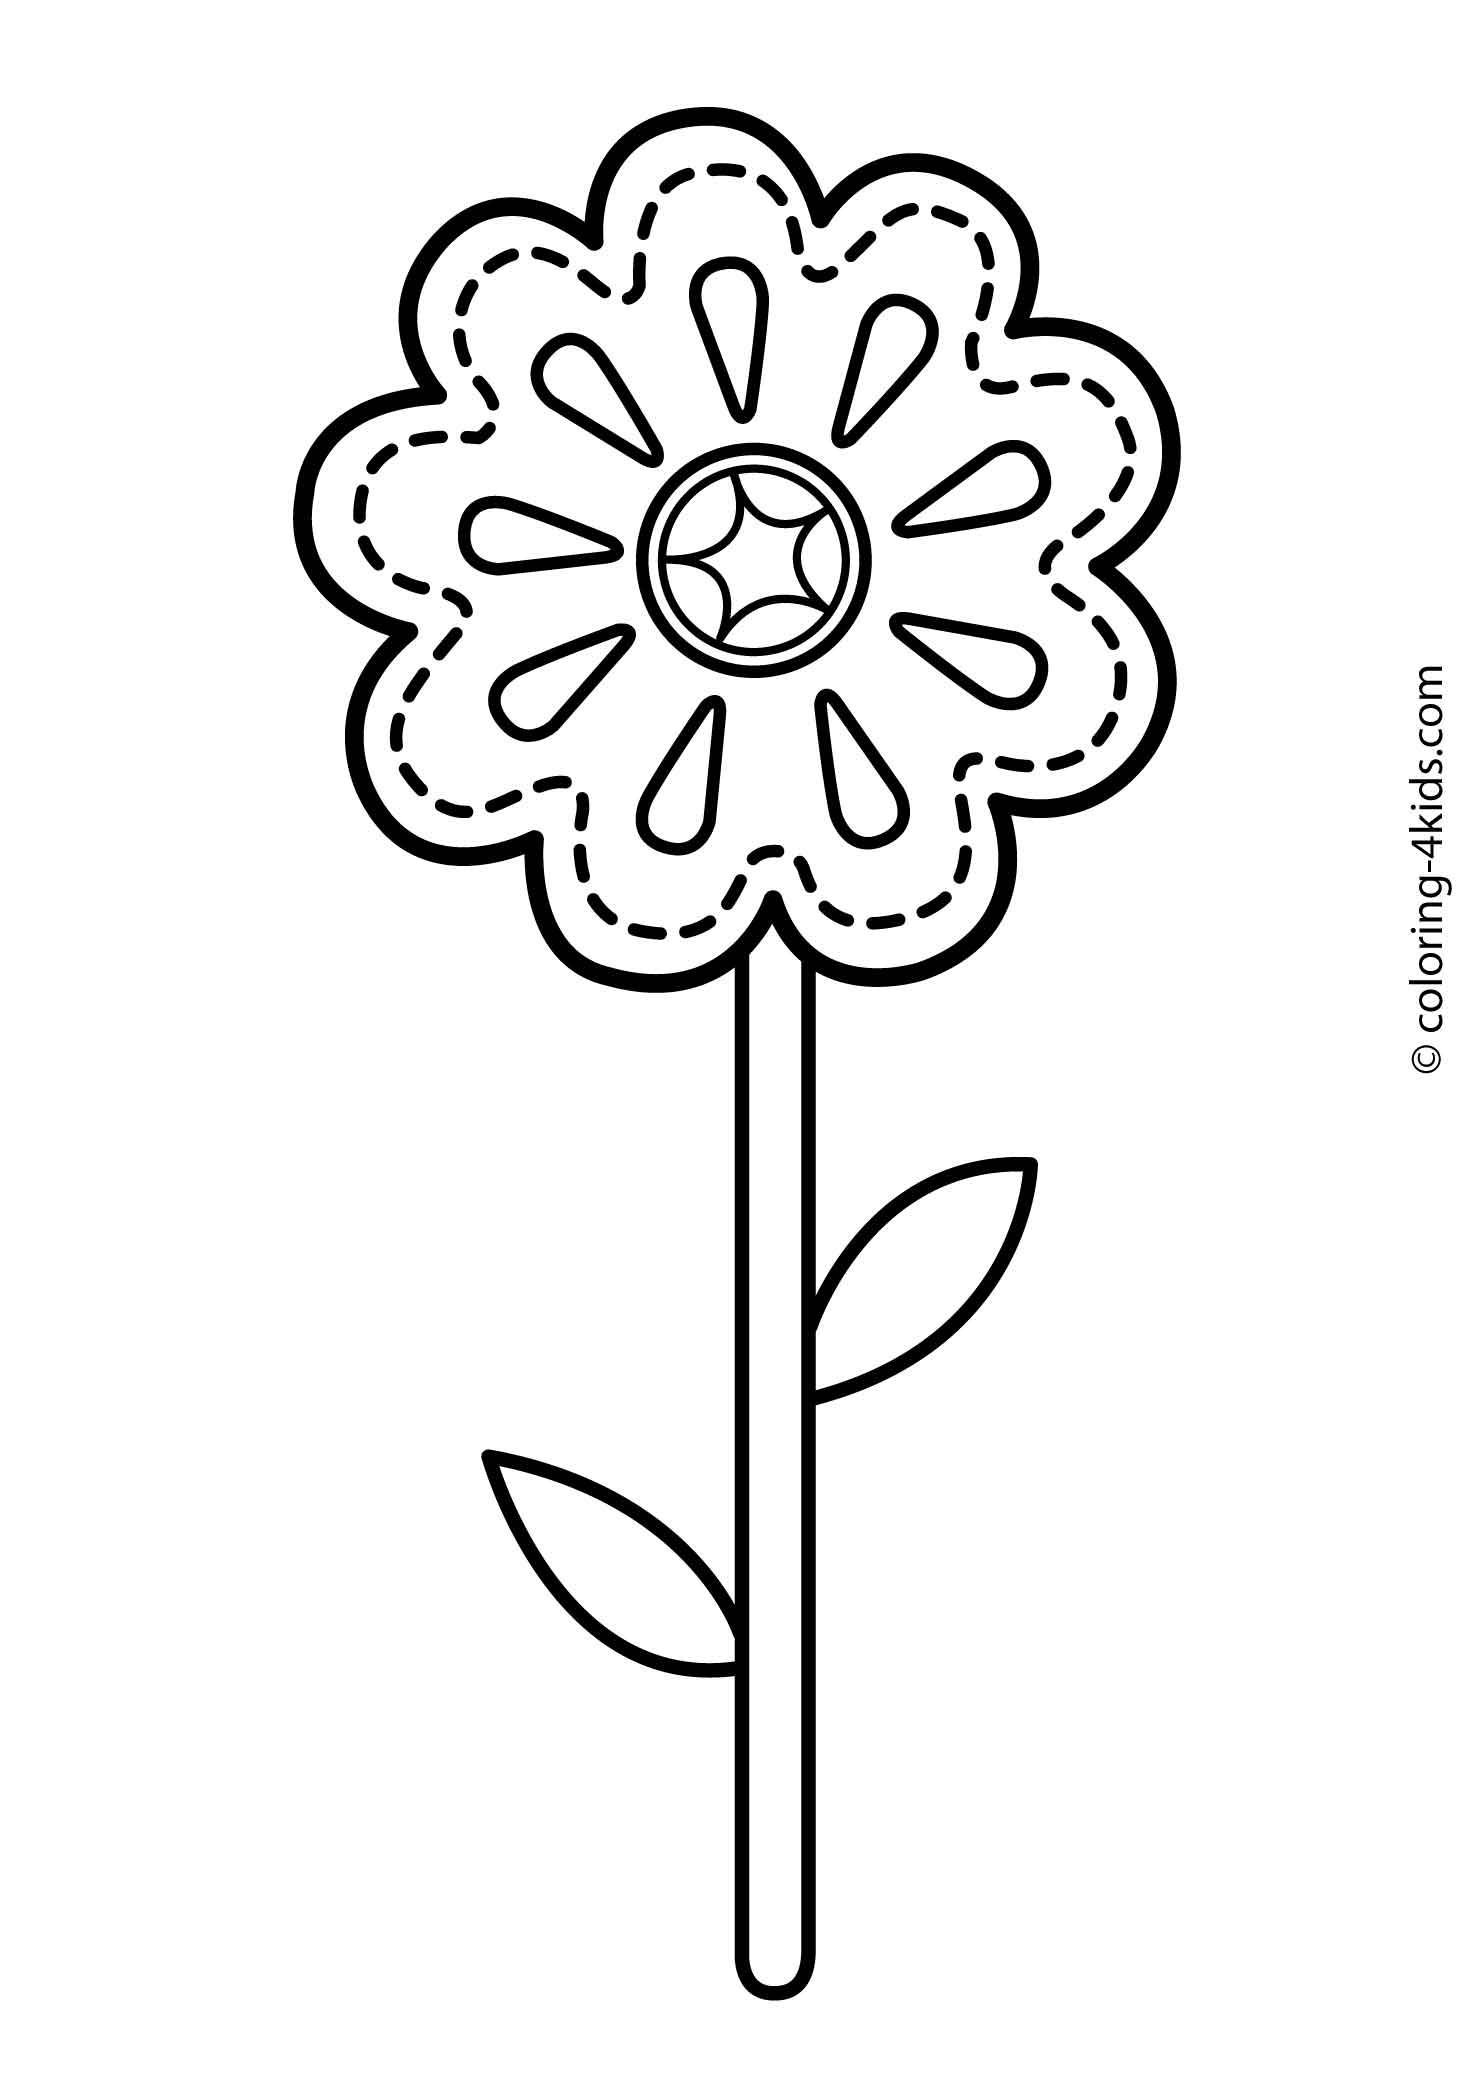 Flower Coloring Pages For Kids Printable 8